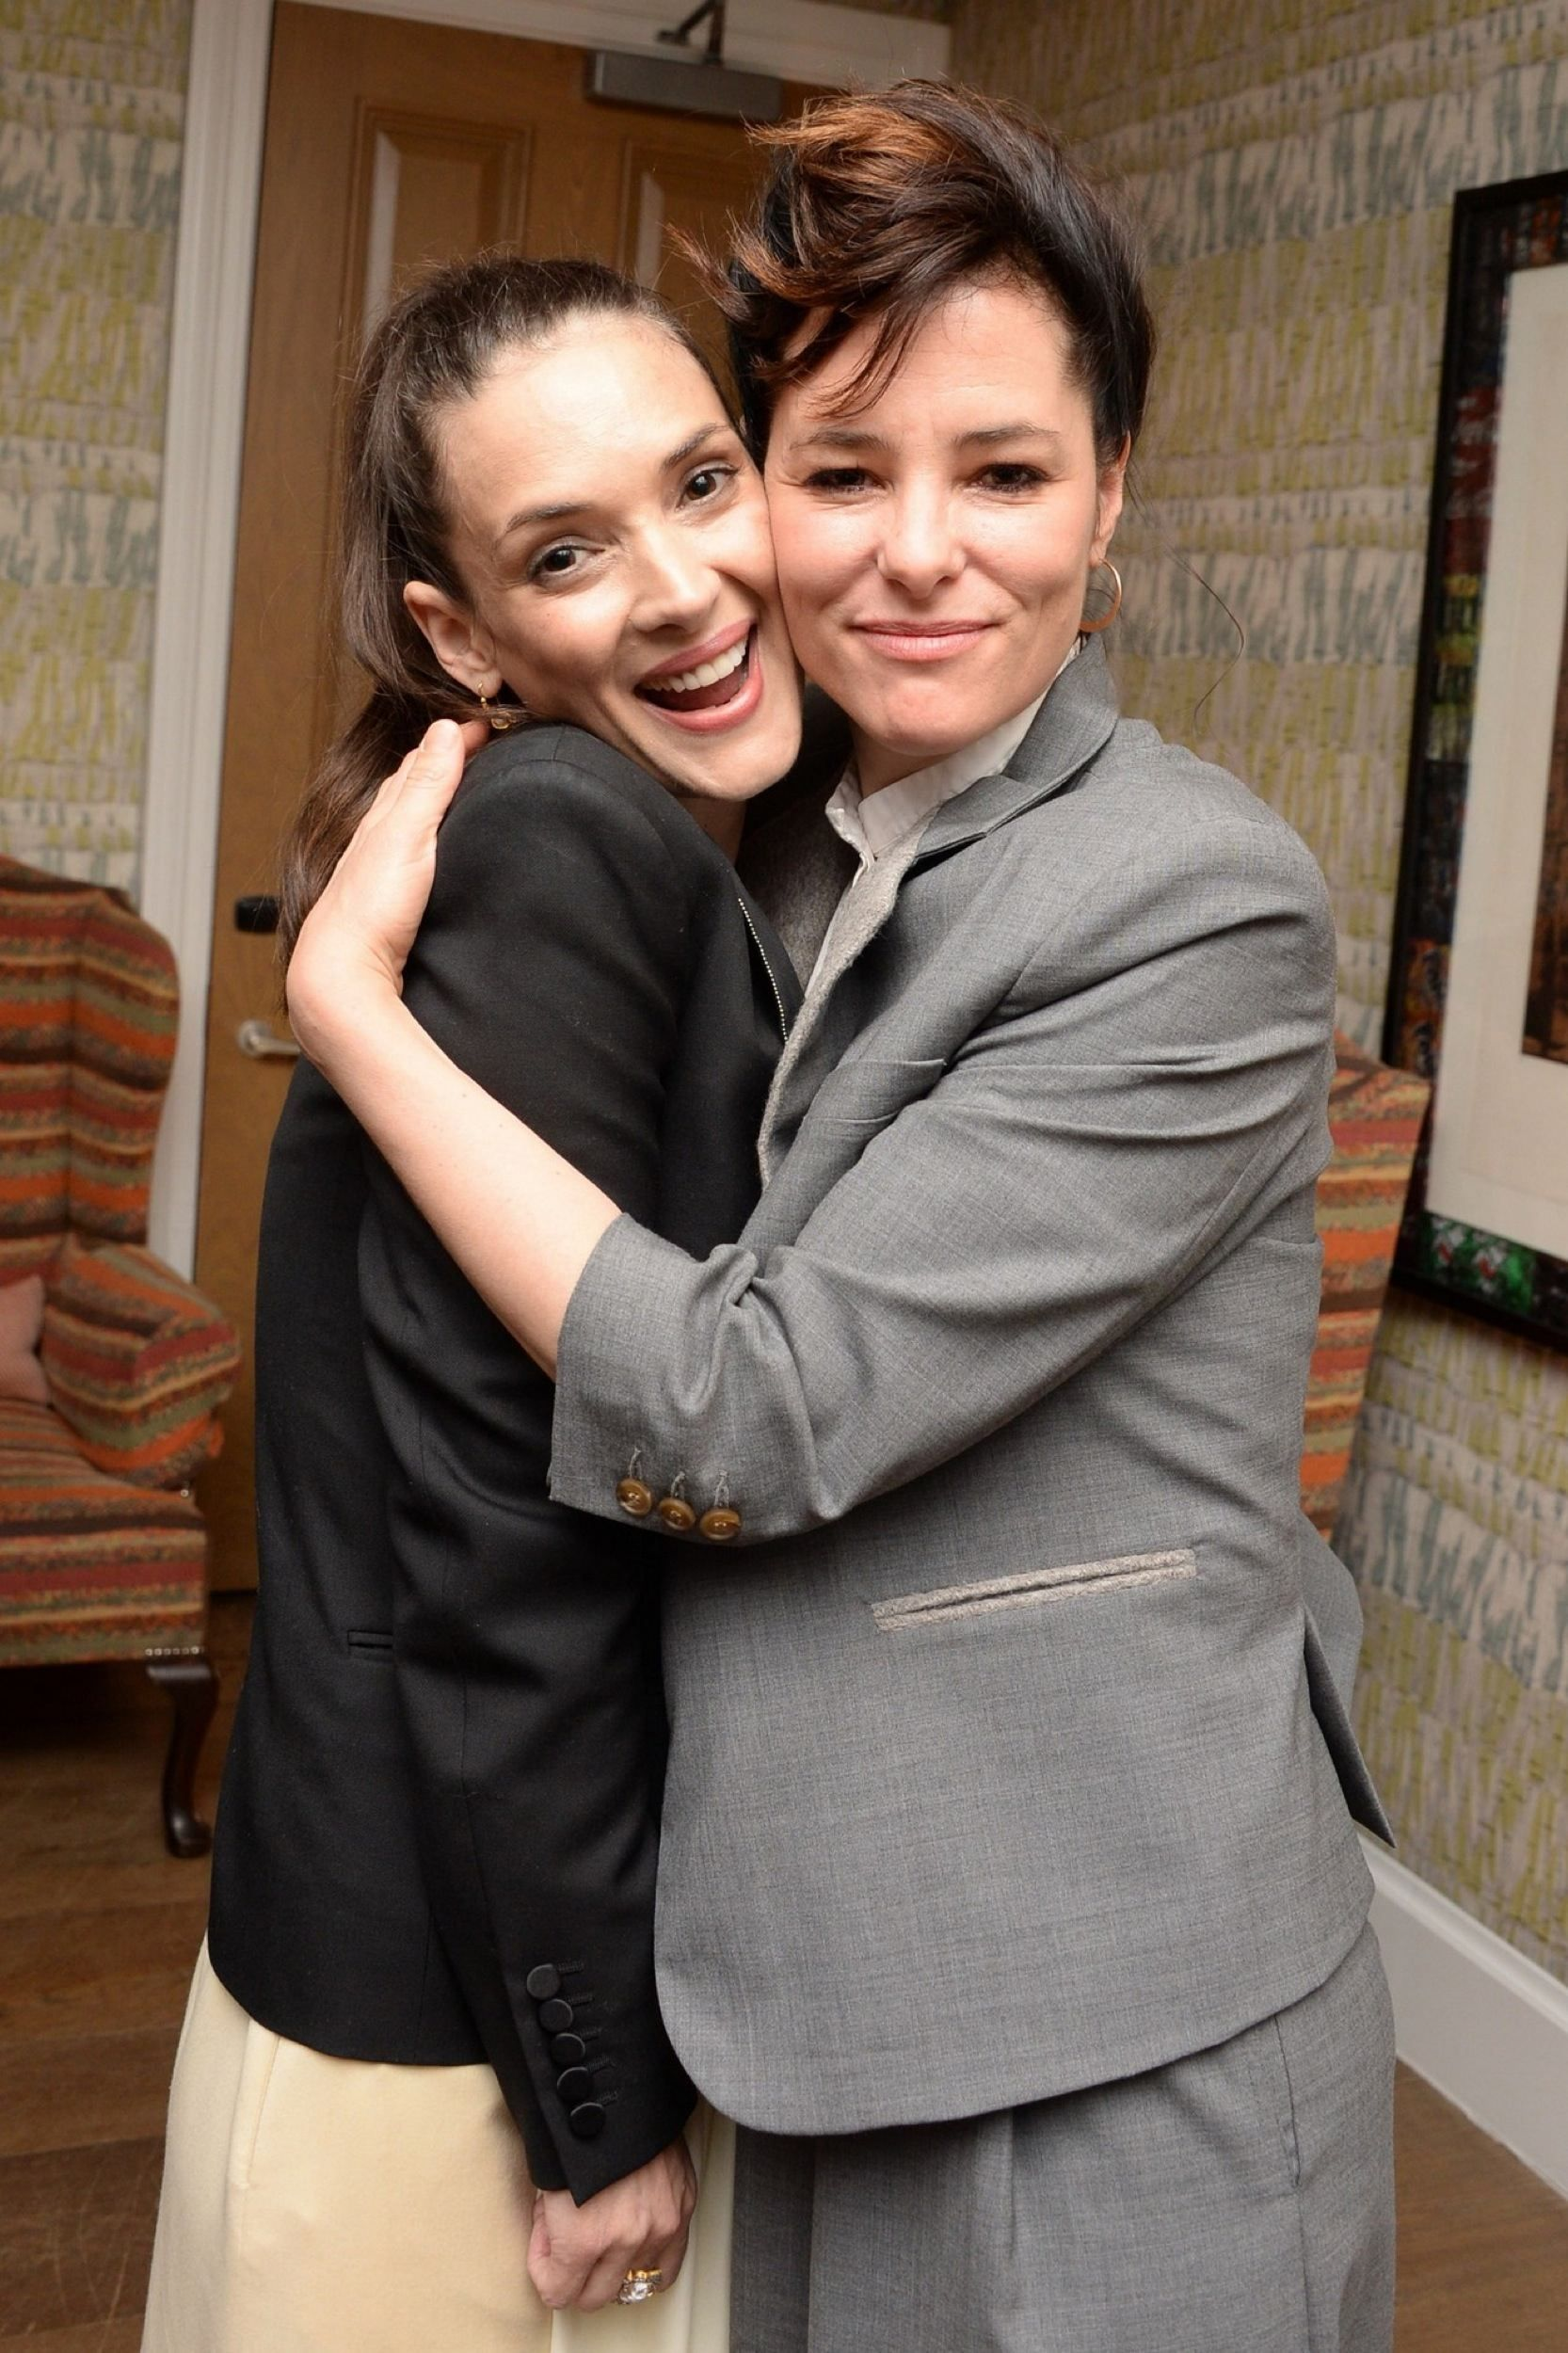 Winona and another favorite of mine Parker Posey, Turks and Caicos  Screening in NY. My question is---when are they gonna do a movie together?  I'm waiting!